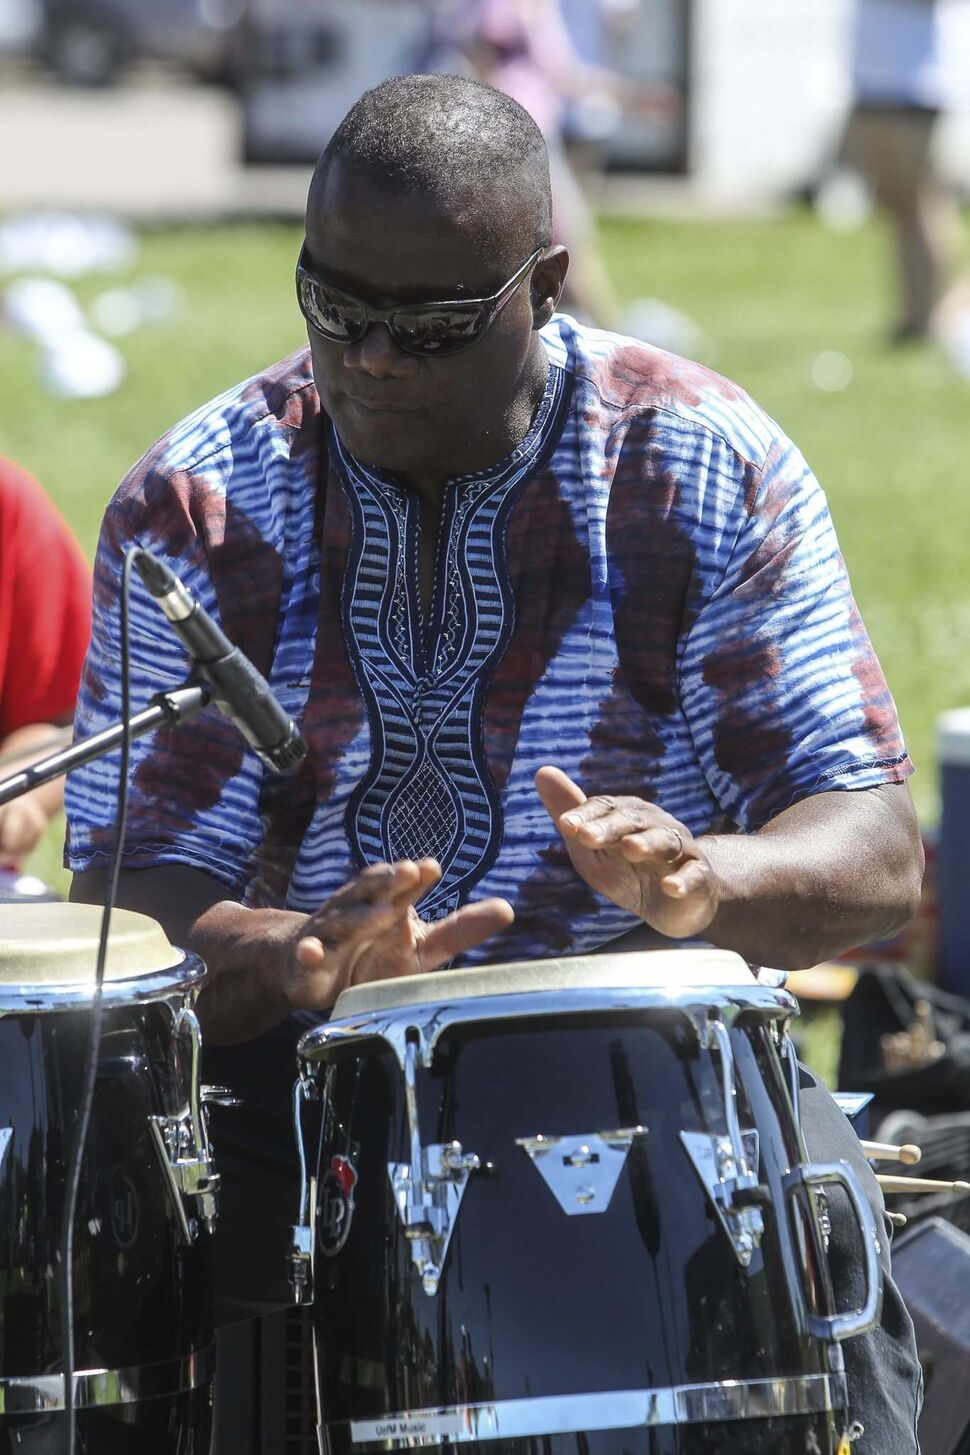 Steve Kirby, seen here performing with the band Jazz on Wheels in 2015 in Winnipeg, has been hired by the Berklee College of Music. (MIKE DEAL / WINNIPEG FREE PRESS FILES)